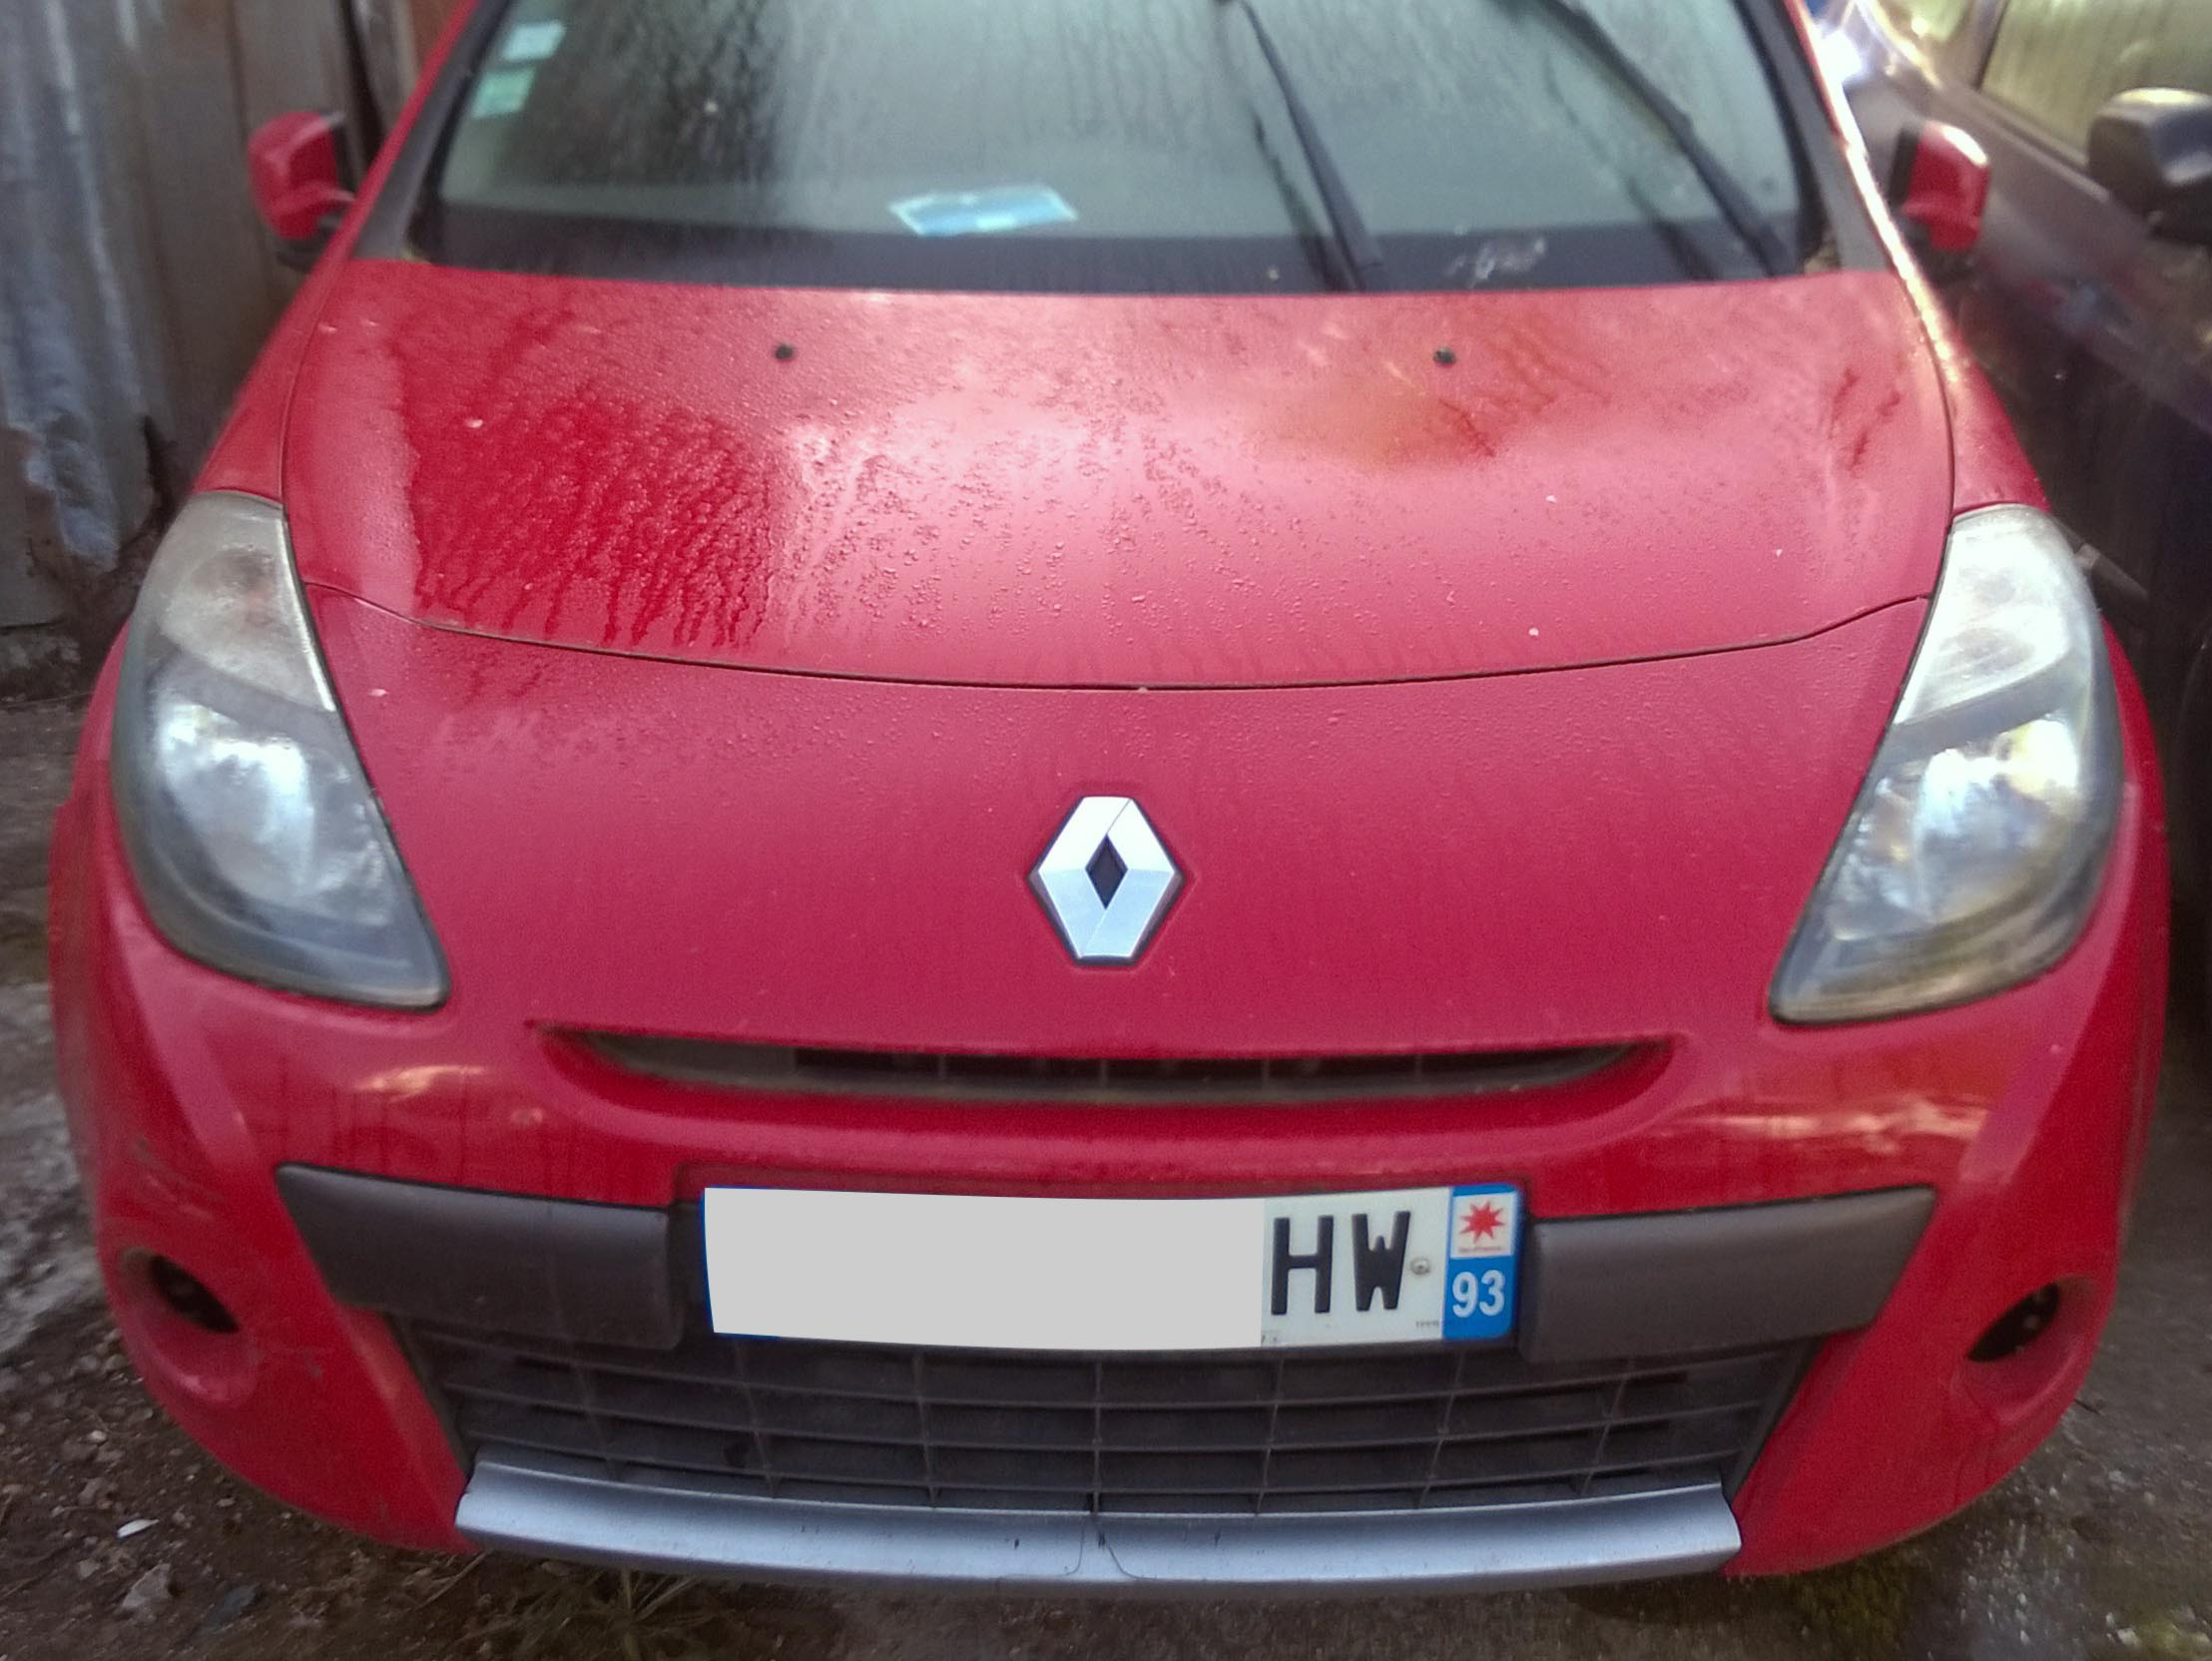 Clio rouge 1.5 DCi accidentée